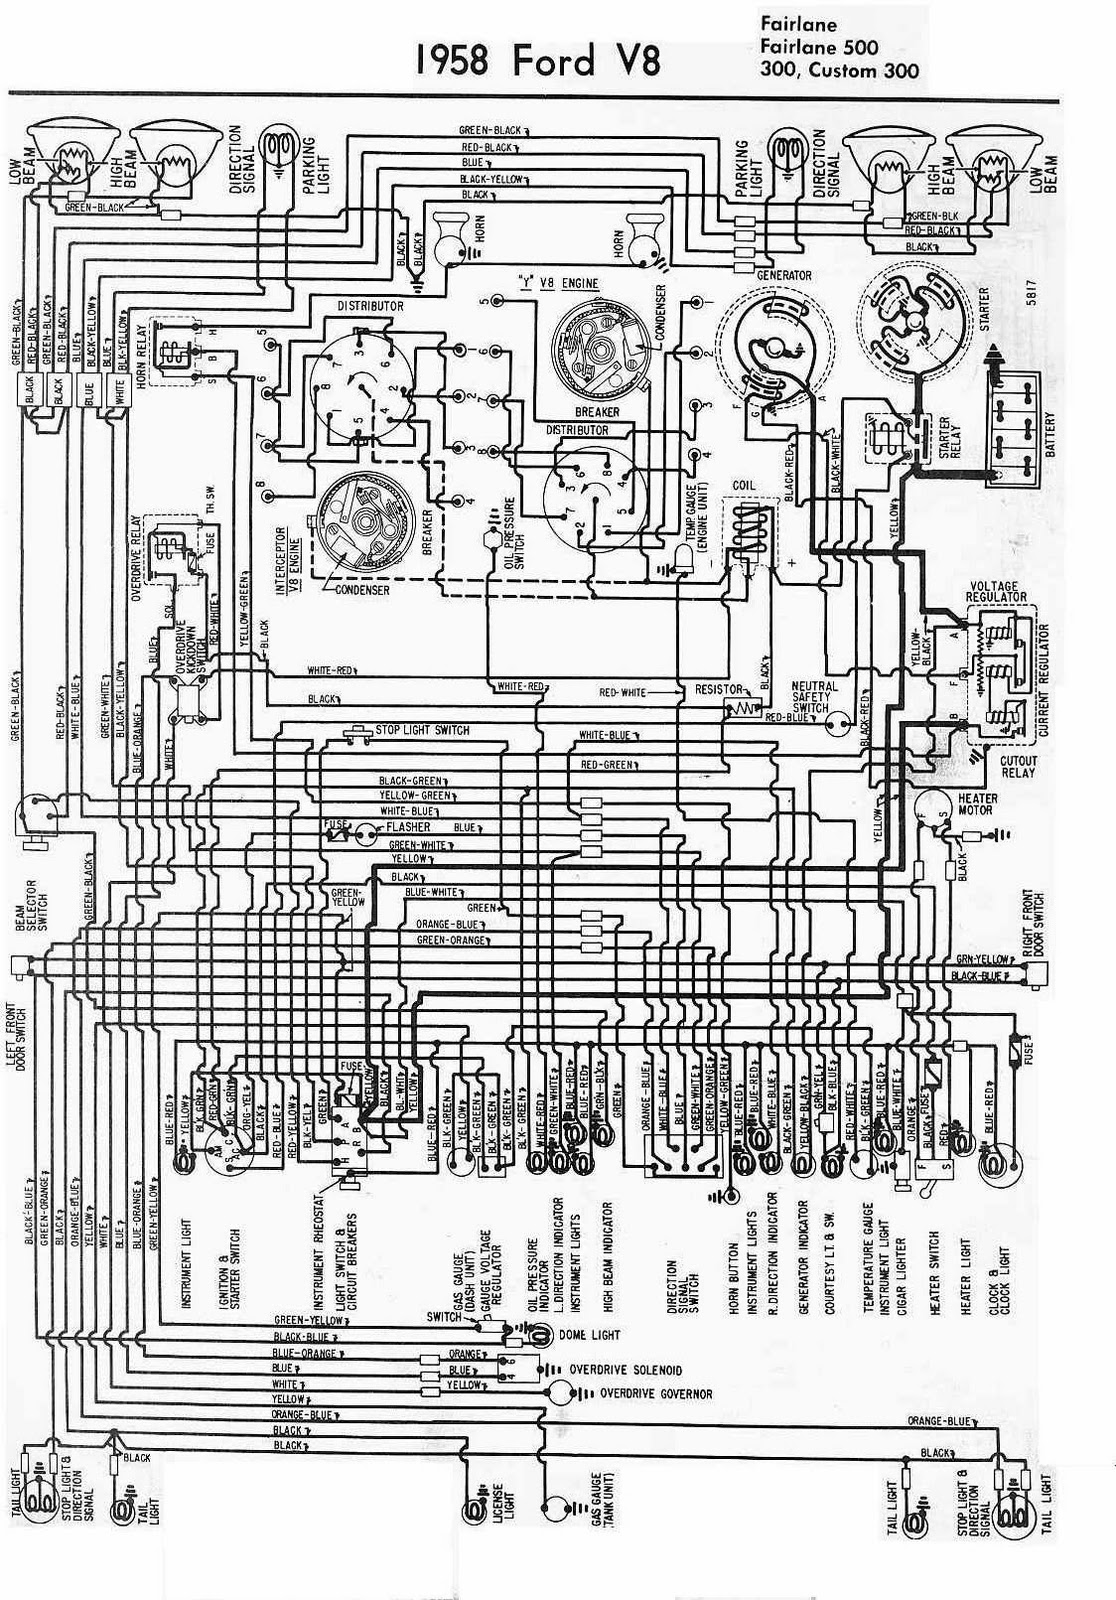 Selector Switch Schematic Diagram Wiring Master Blogs Posistion 2 Electrical For 1958 Ford V8 All About Position 3